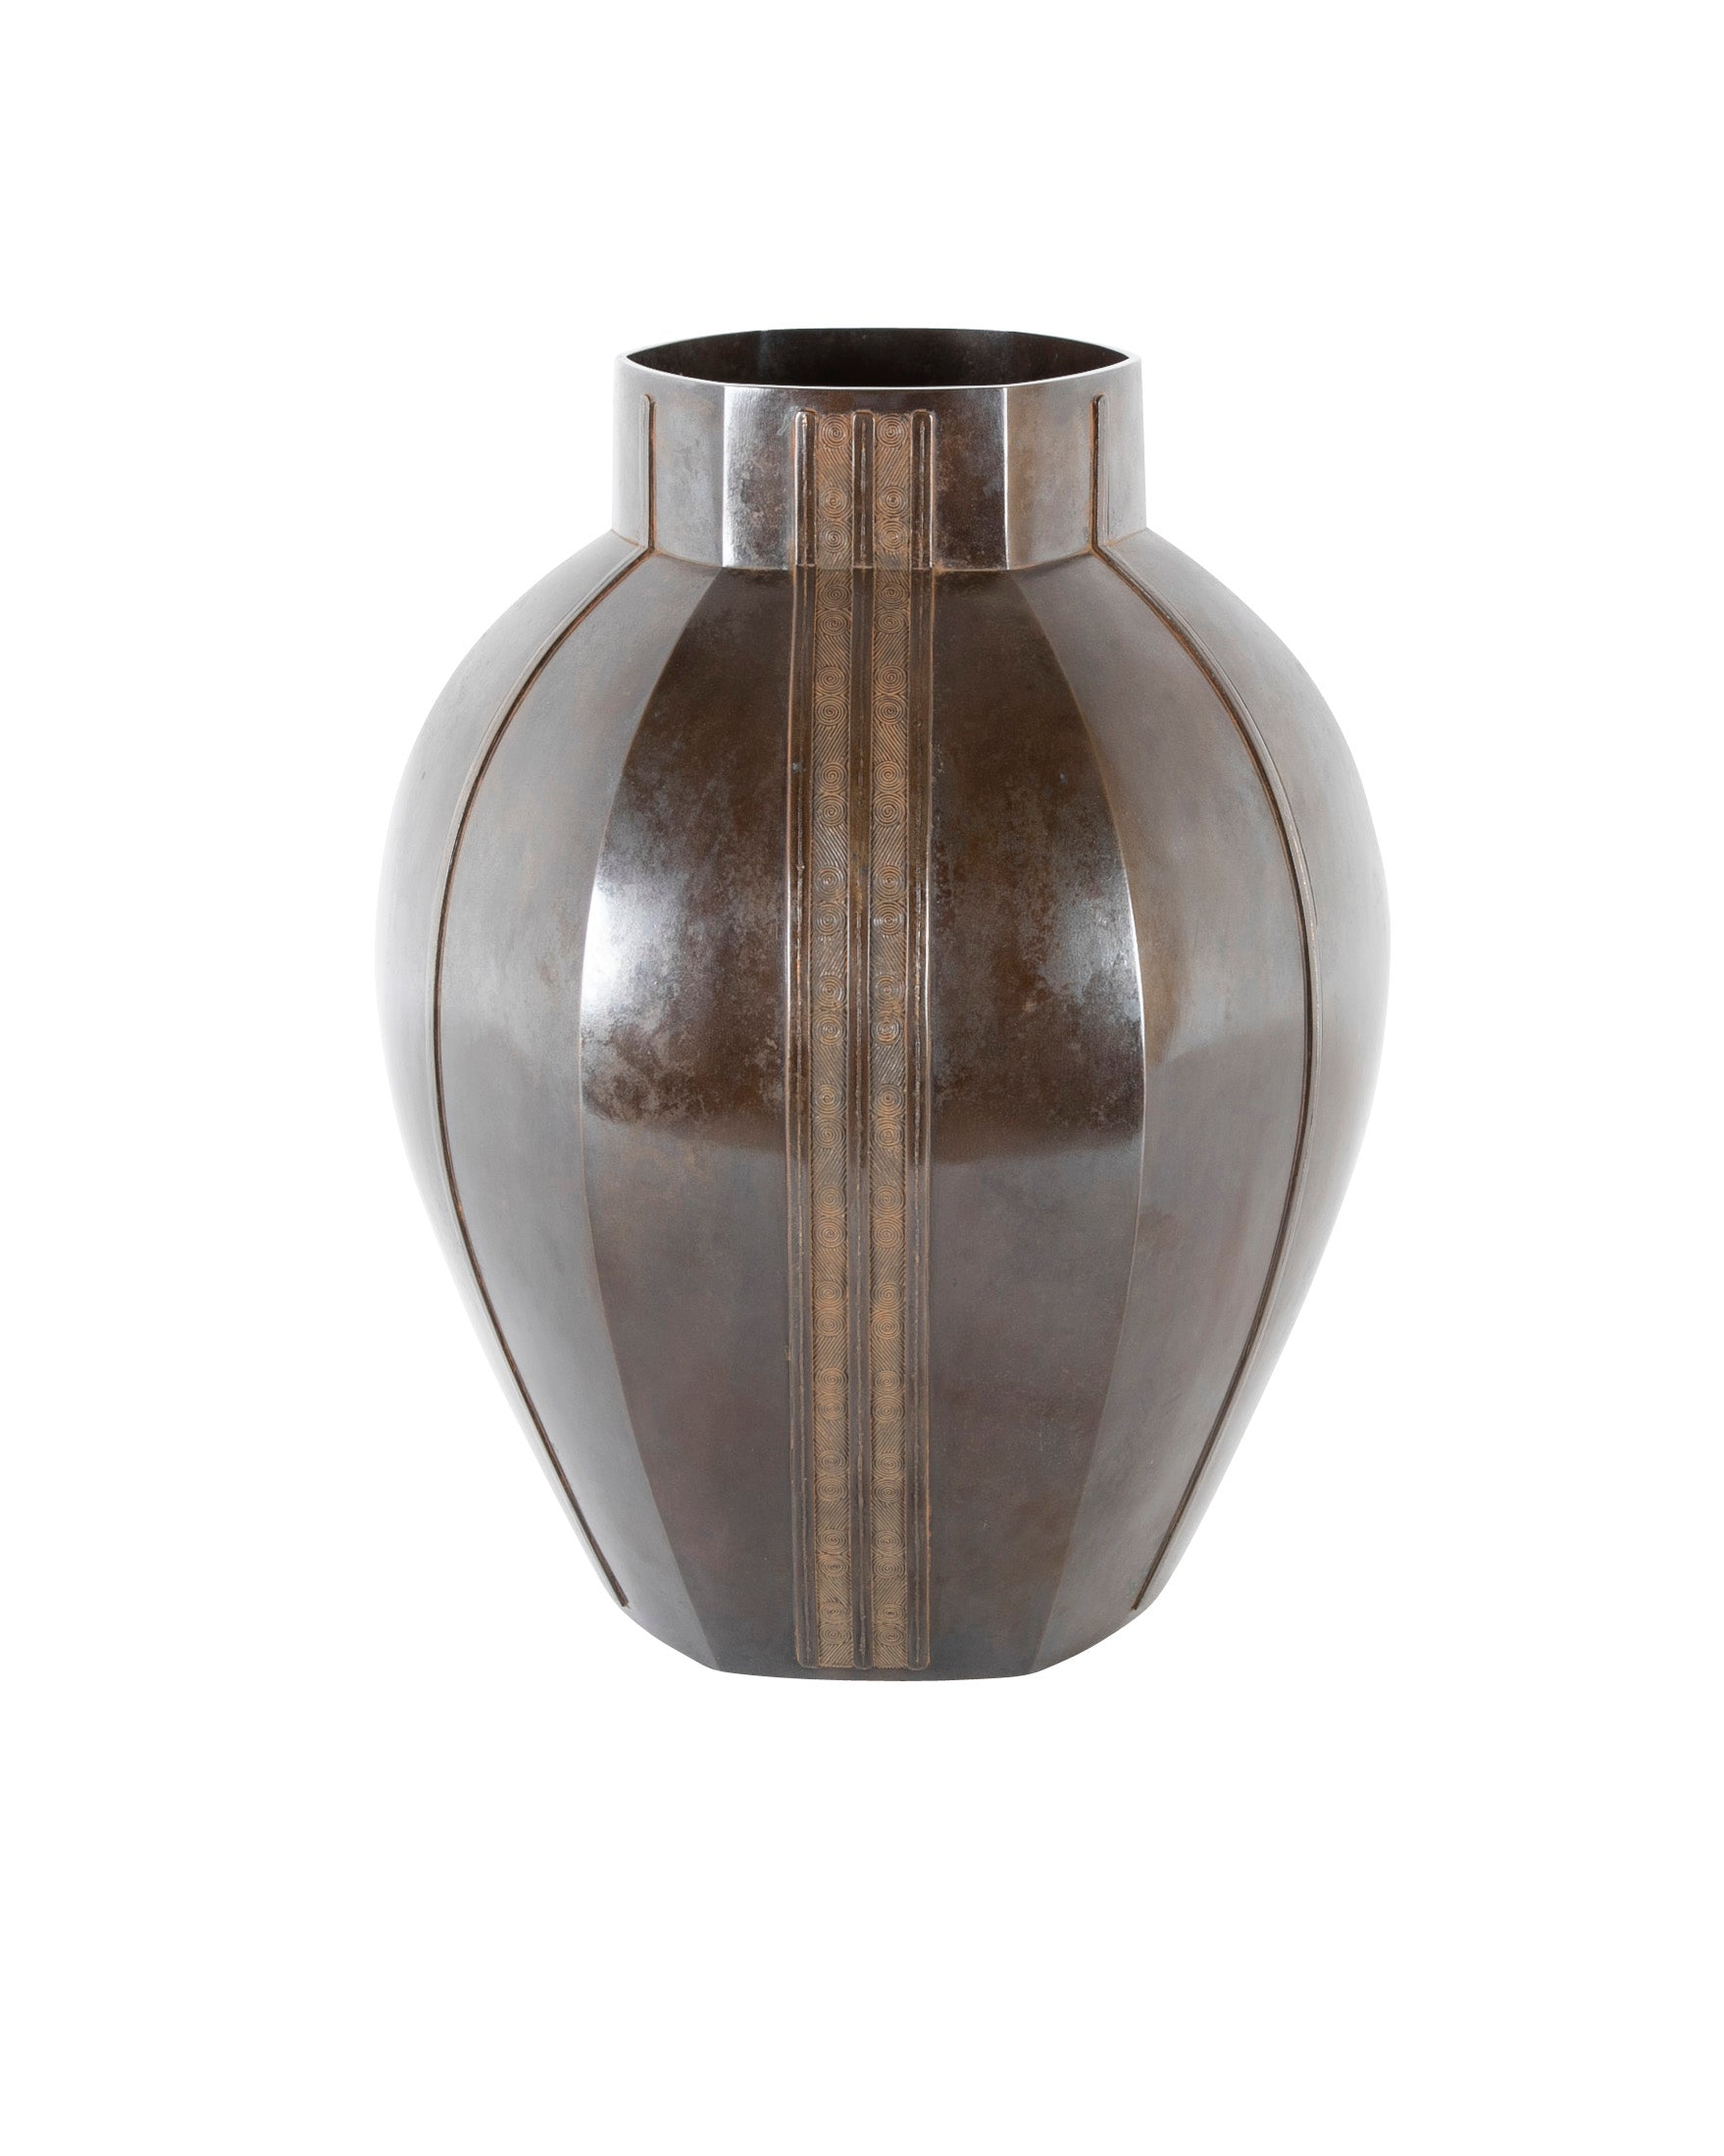 Large Bronze Six-Corned Flower Vase with Chain Pattern by Aida Tomiyasu